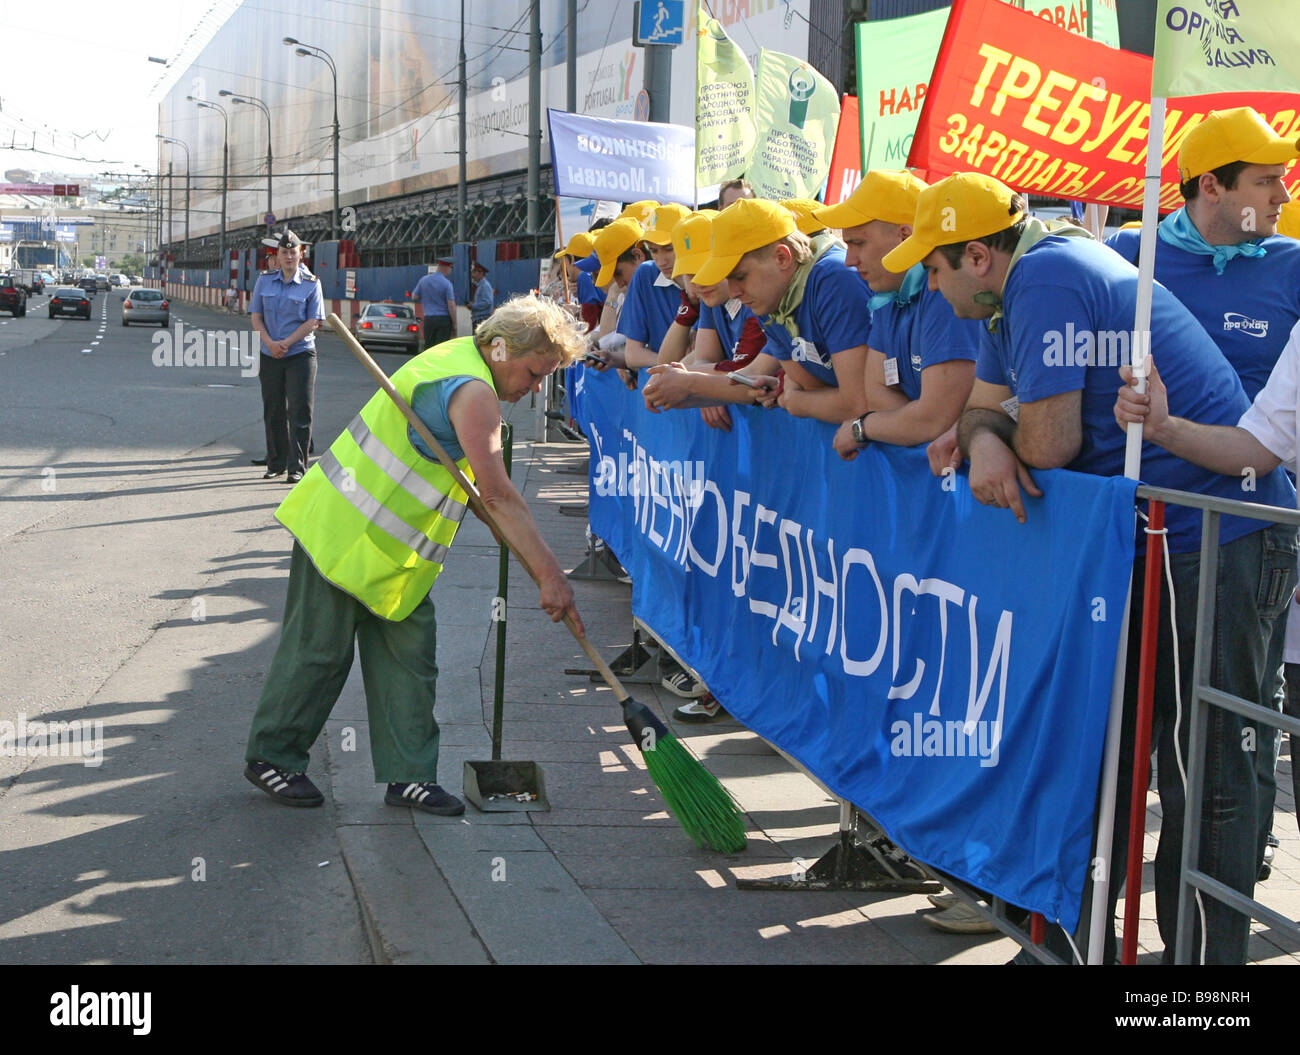 Federation of Independent Russian Trade Unions stages protest For a Worthy Life on Moscow s Okhotny Ryad Street - Stock Image